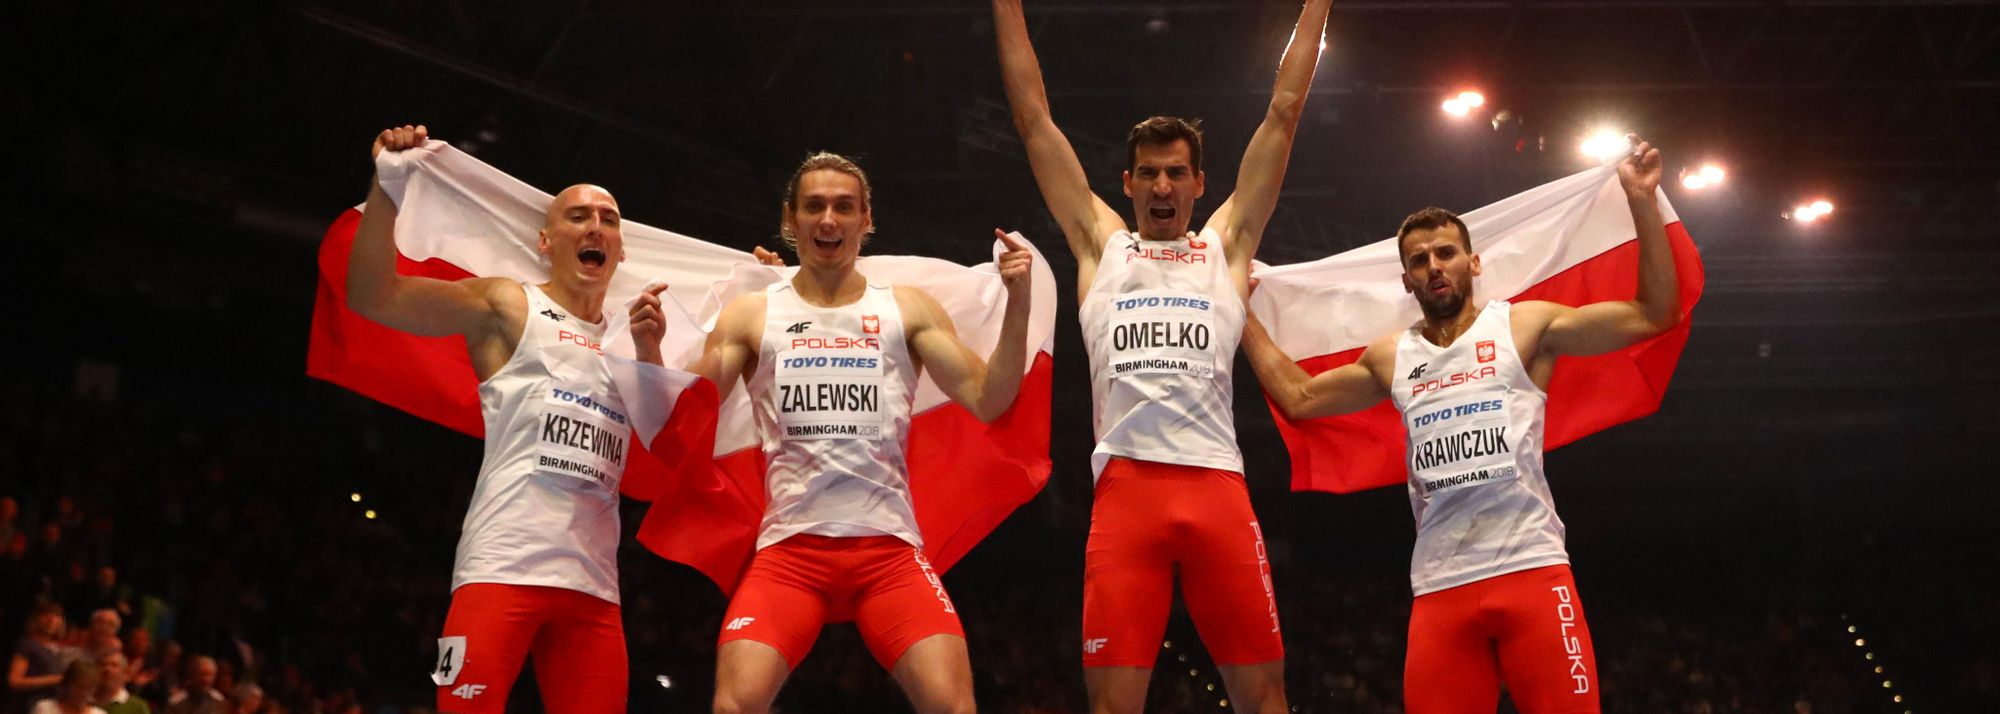 A look at the Polish men's 4x400m relay squad that broke the world indoor record at the World Indoor Championships in March, a record that was ratified earlier this week.